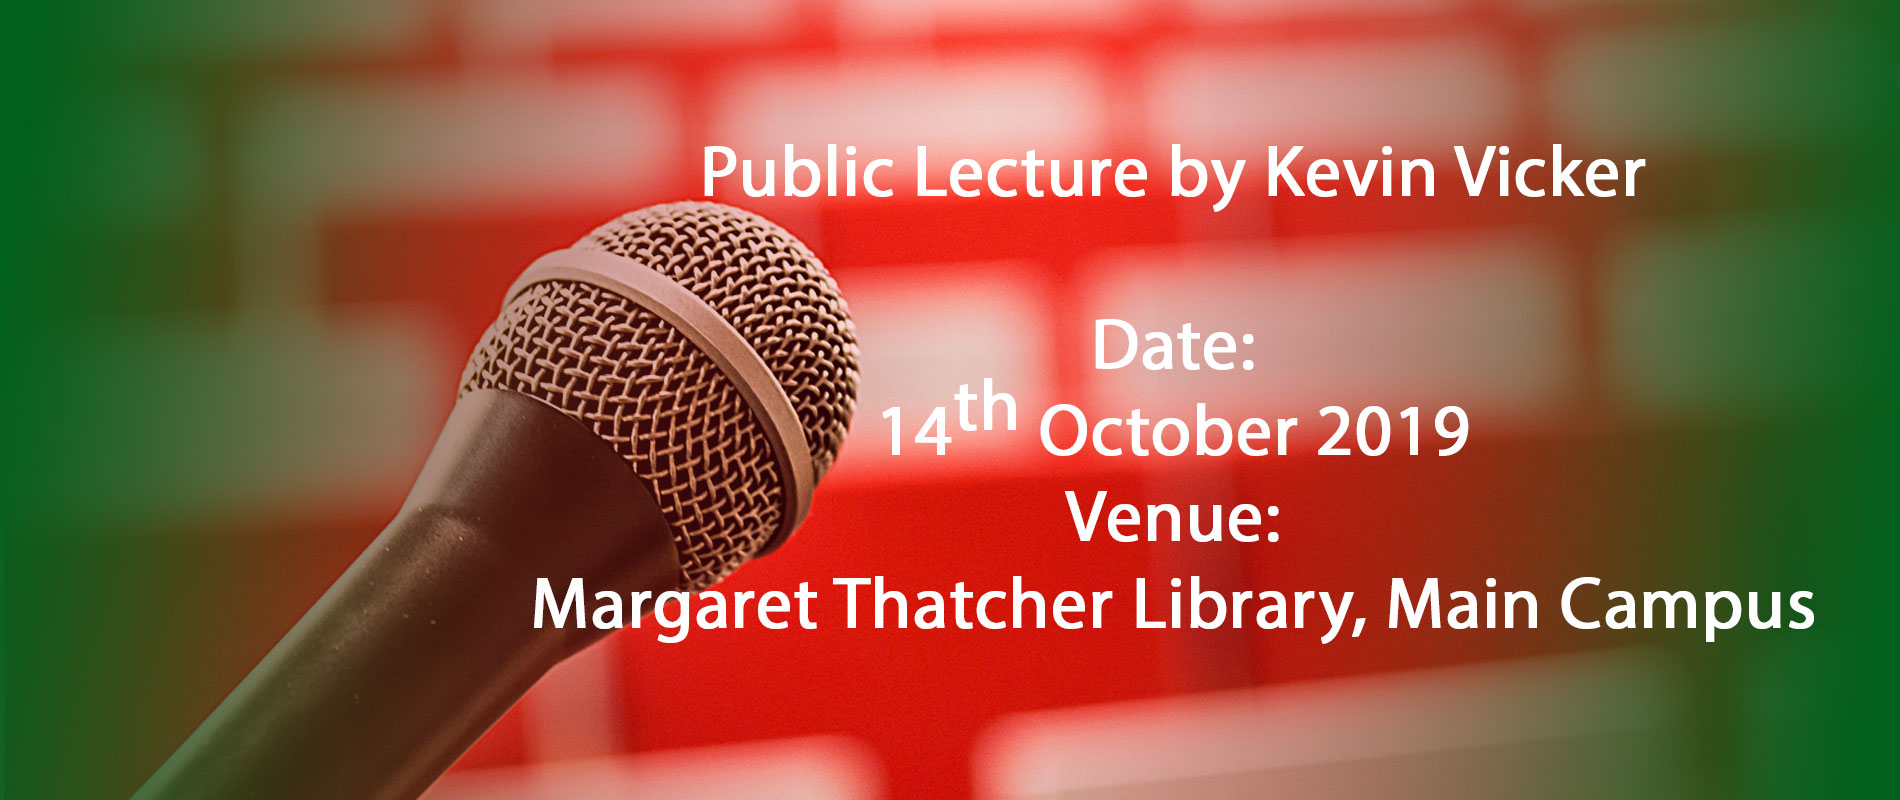 public lecture by kevin vicker at moi university